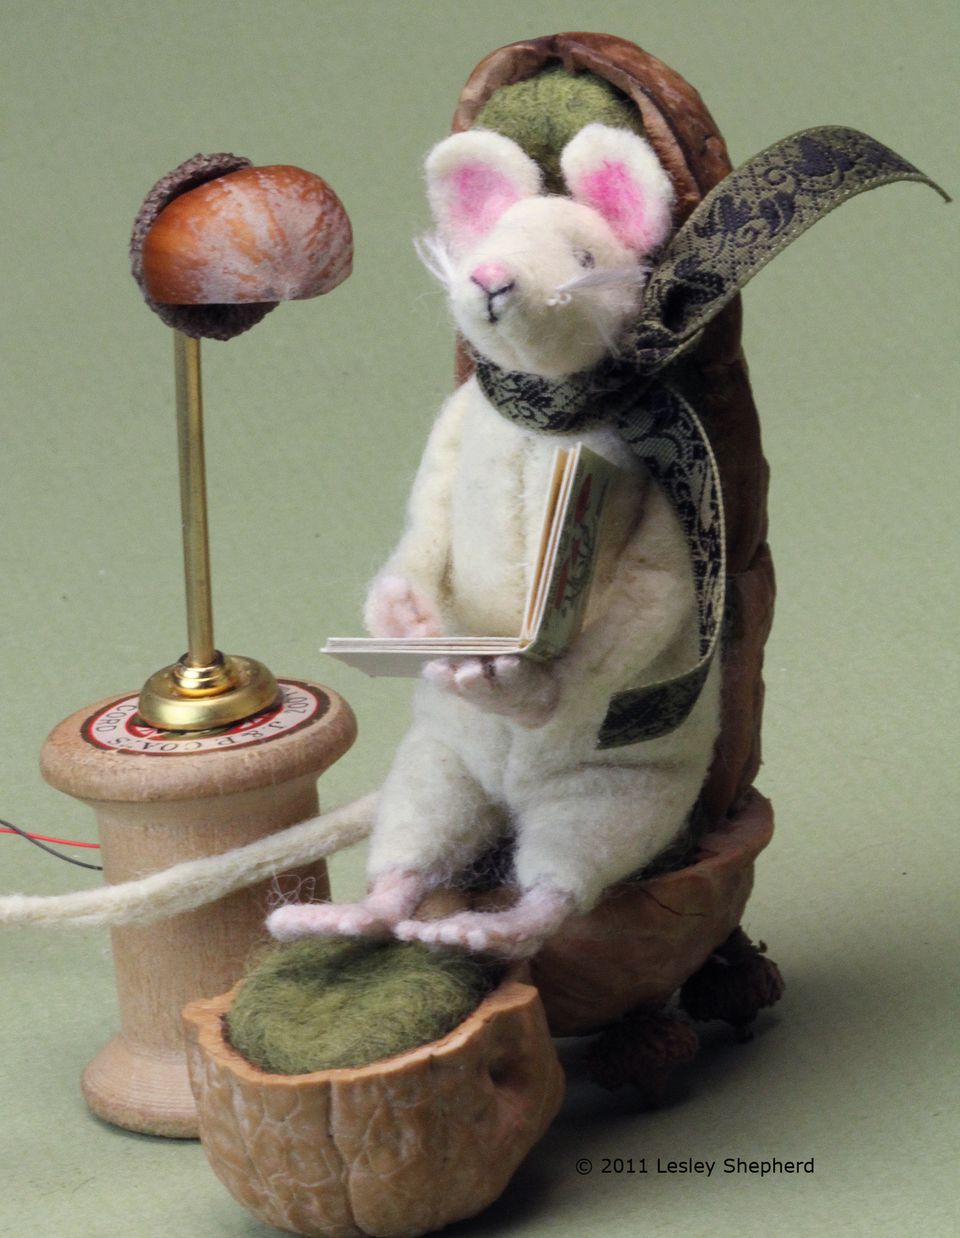 Miniature mouse in his reading chair with a reading lamp on the table beside him.